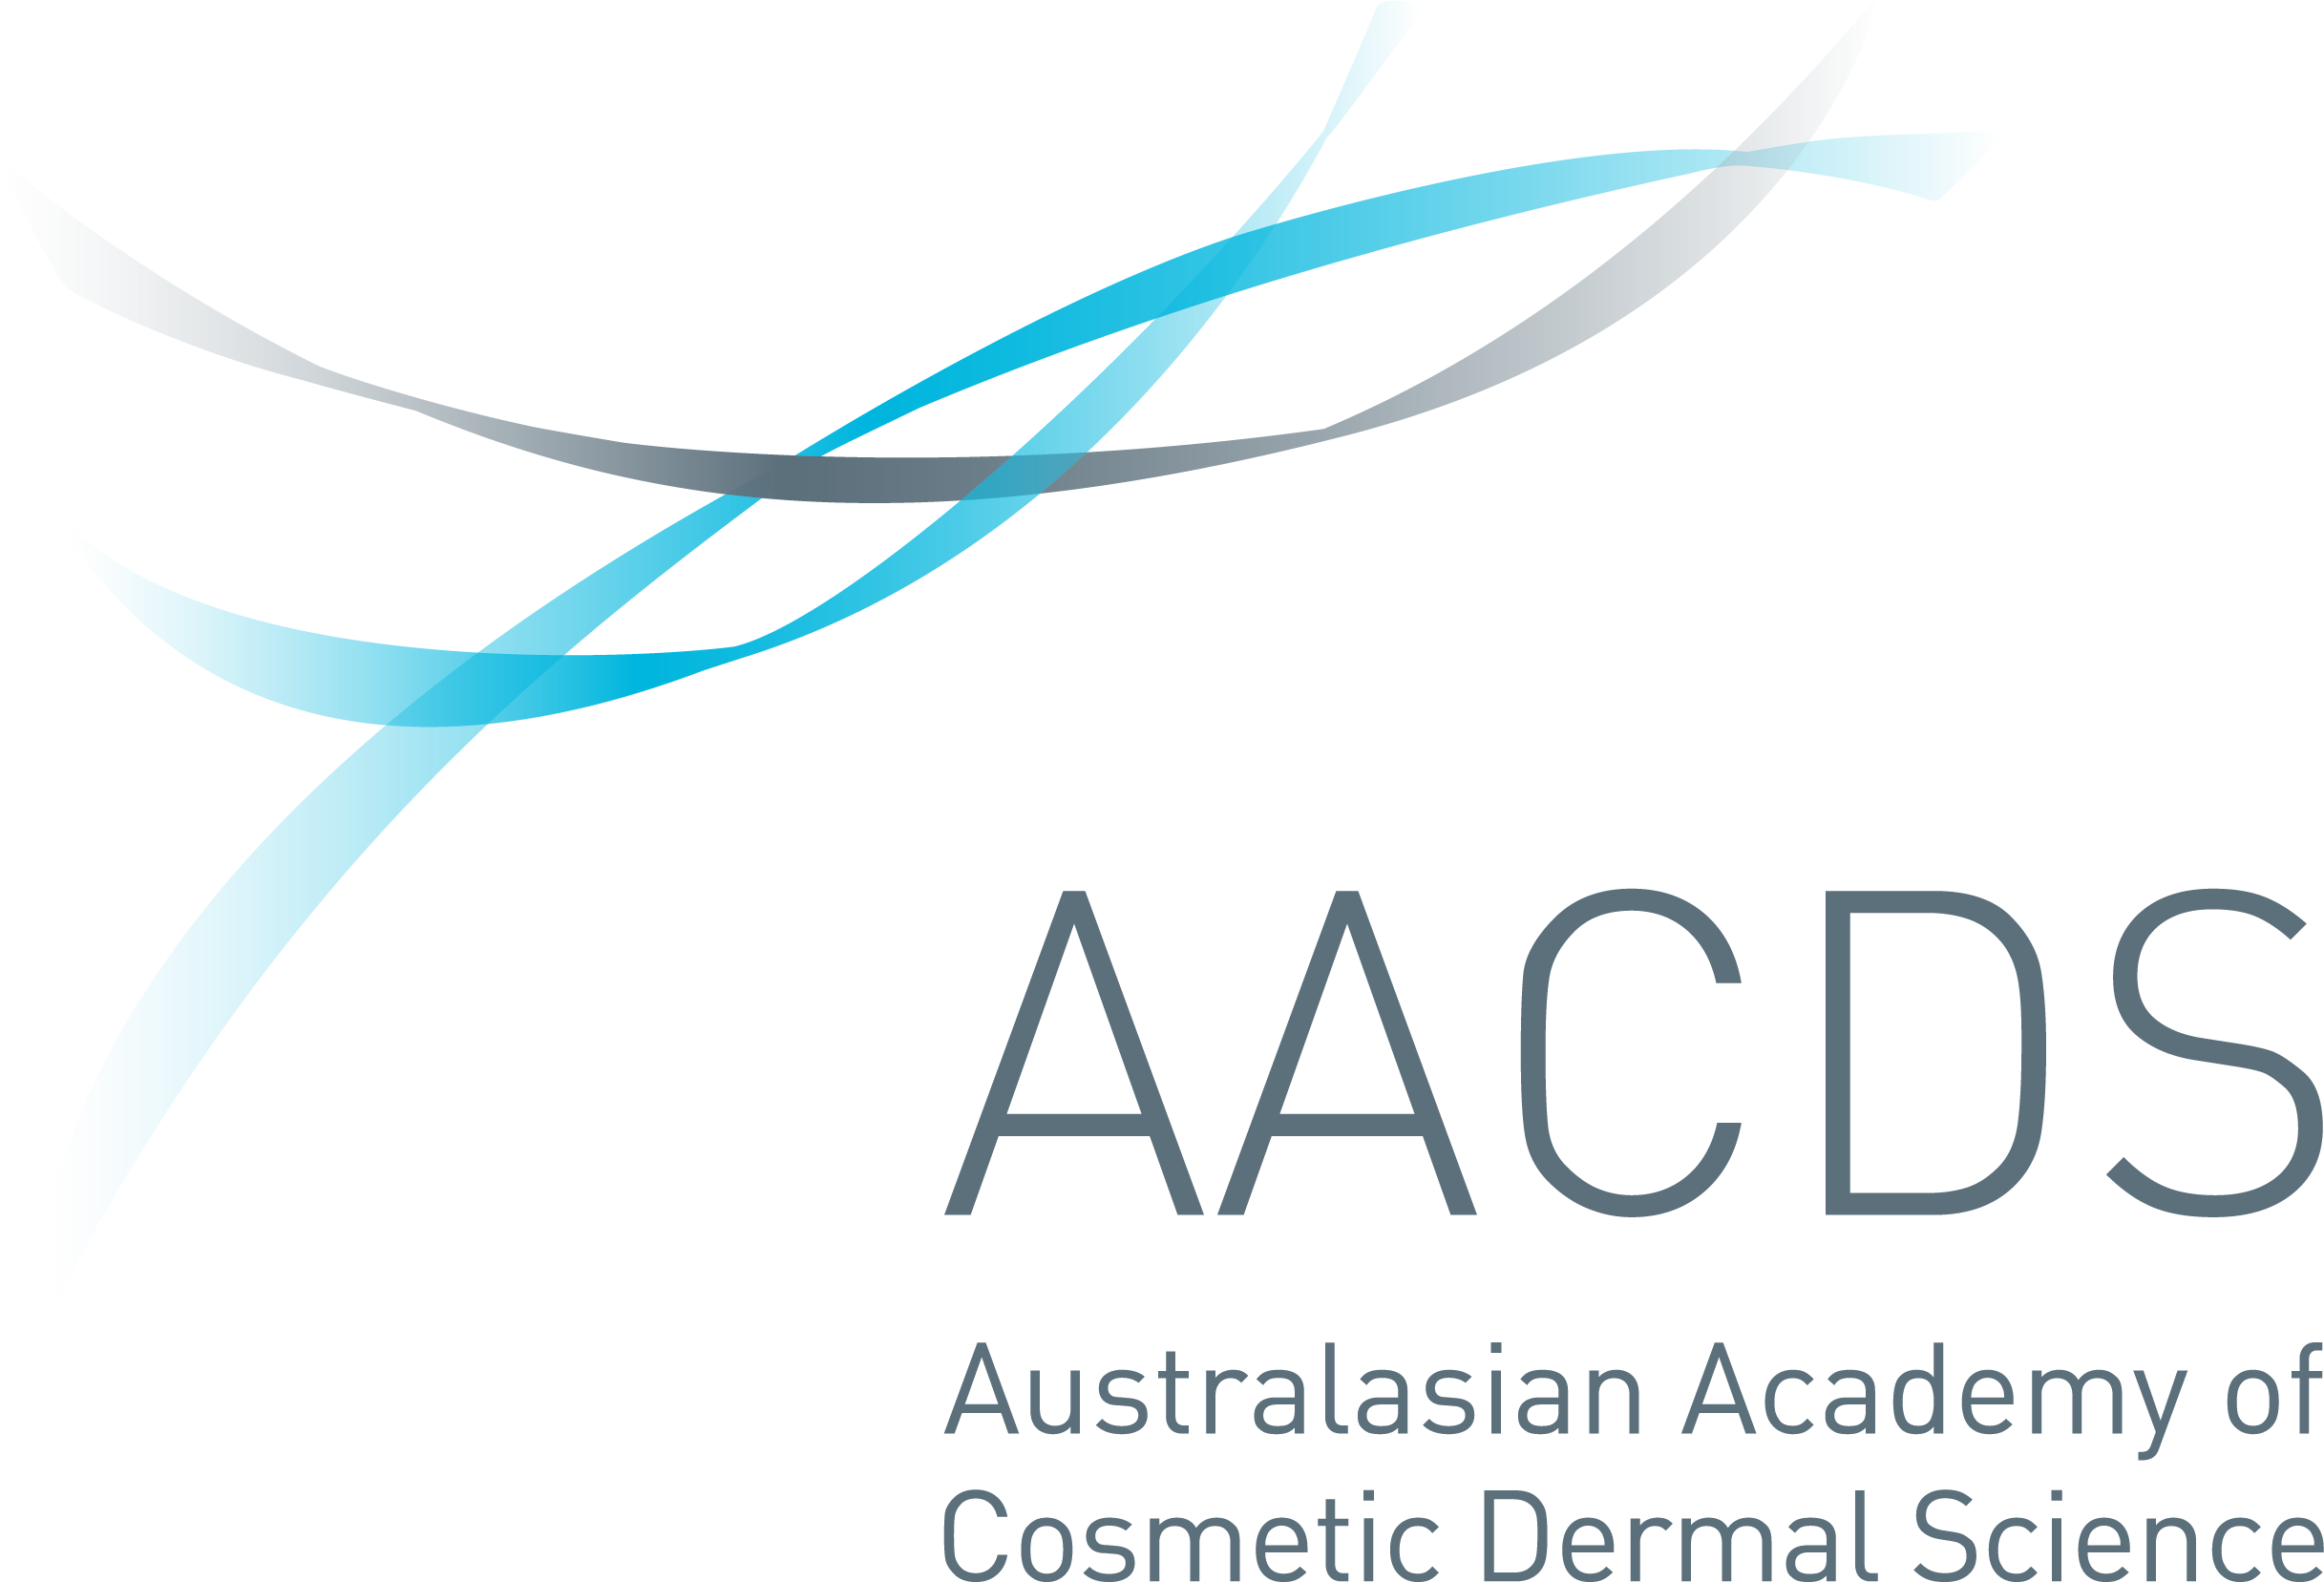 AACDS (Australasian Academy of Cosmetic Dermal Science)